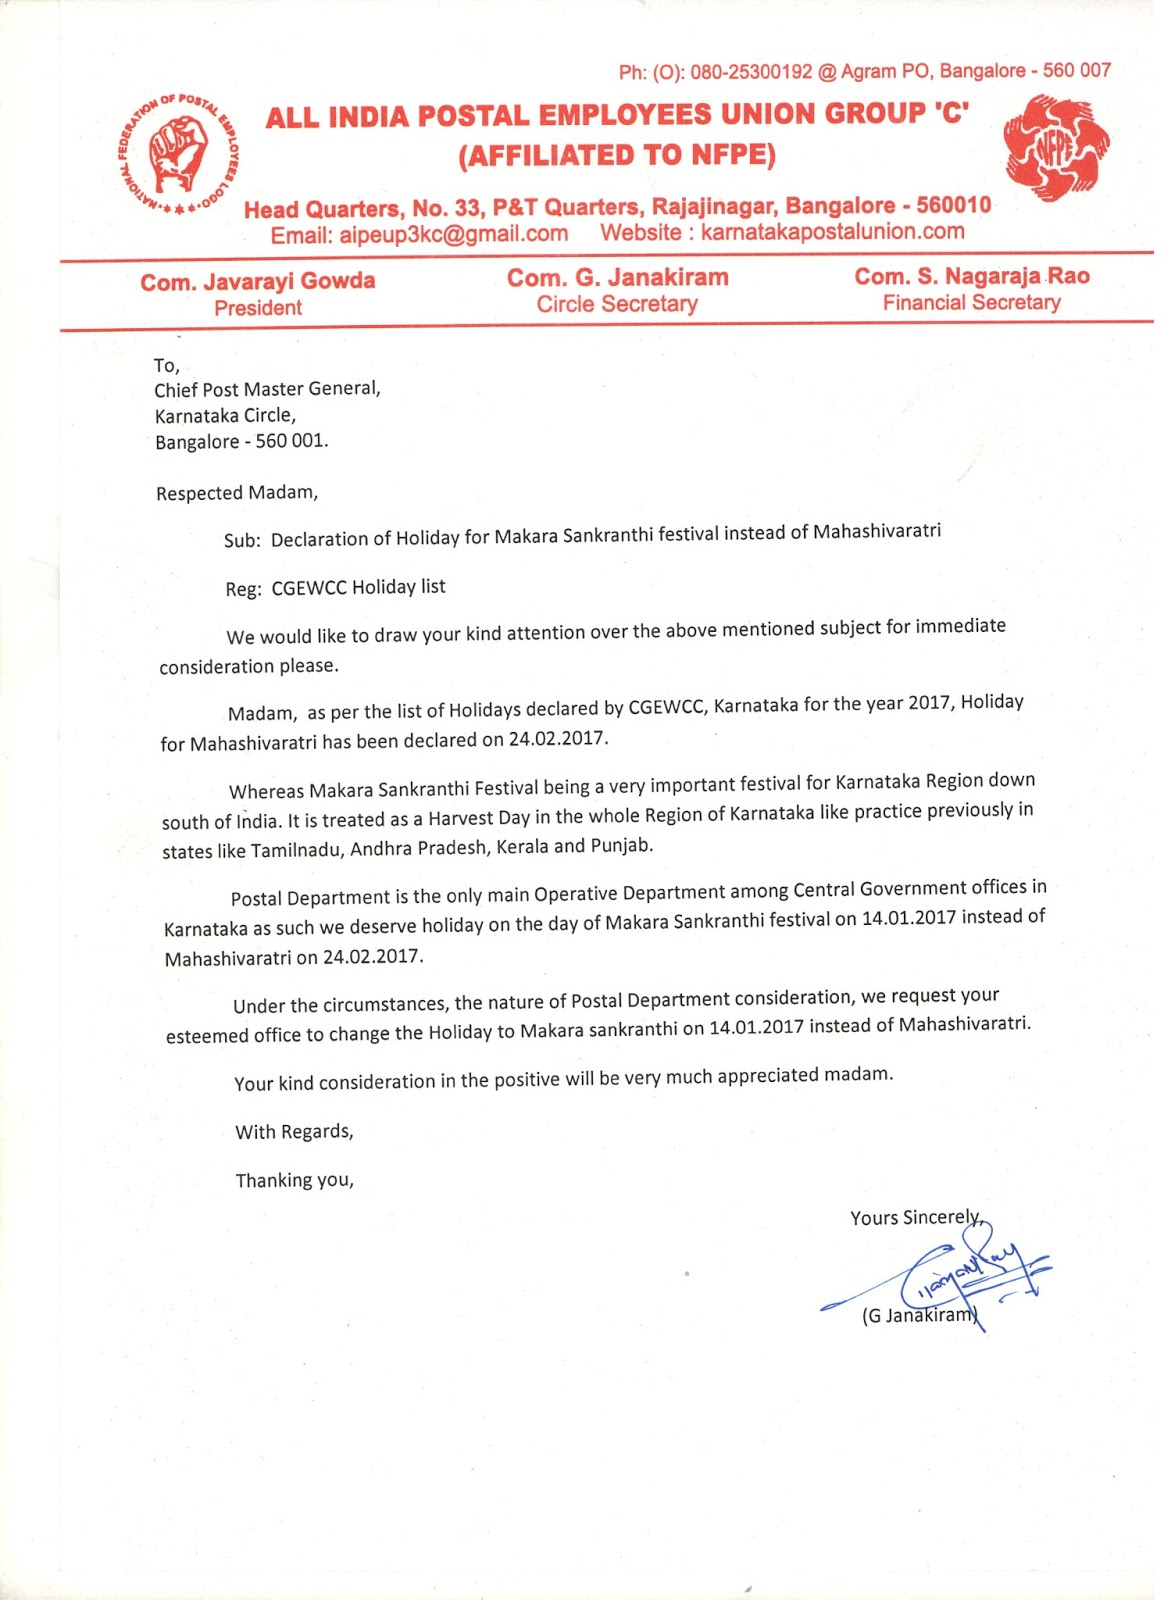 the shimoga post letter sent to cpmg for declaration of holiday letter sent to cpmg for declaration of holiday for makara sankranthi festival instead of mahashivaratri on 21st 2016